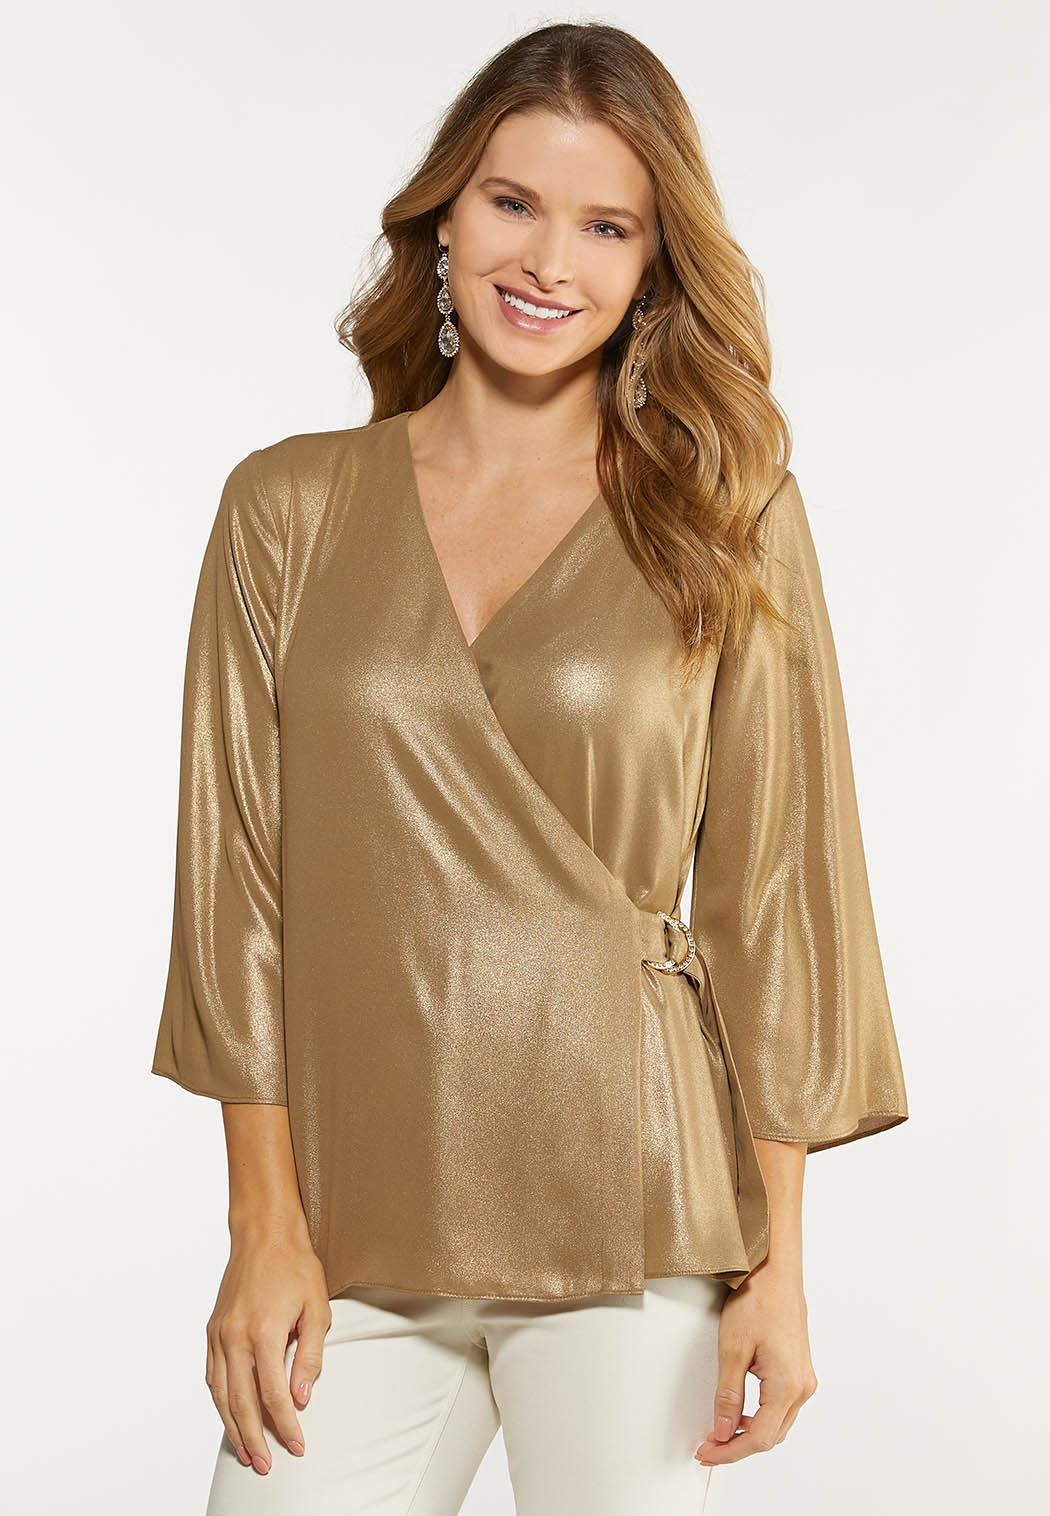 Shimmery Gold Faux Wrap Top